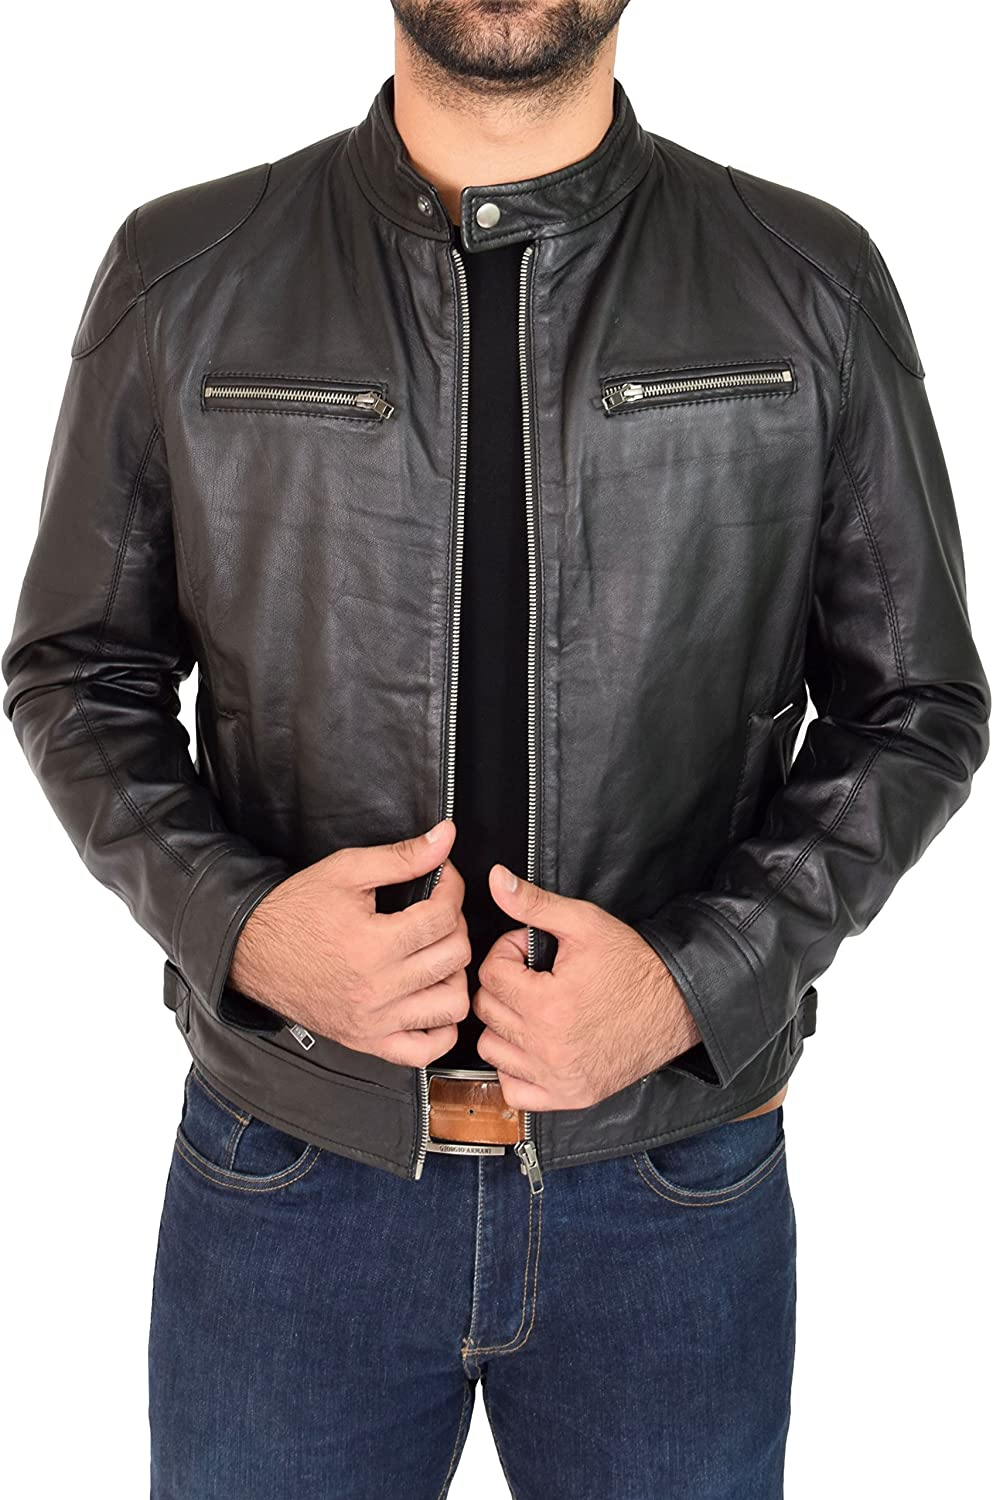 A1 FASHION GOODS Mens Black Leather Jacket Biker Style Fitted Standing Collar Casual Jacket Bill